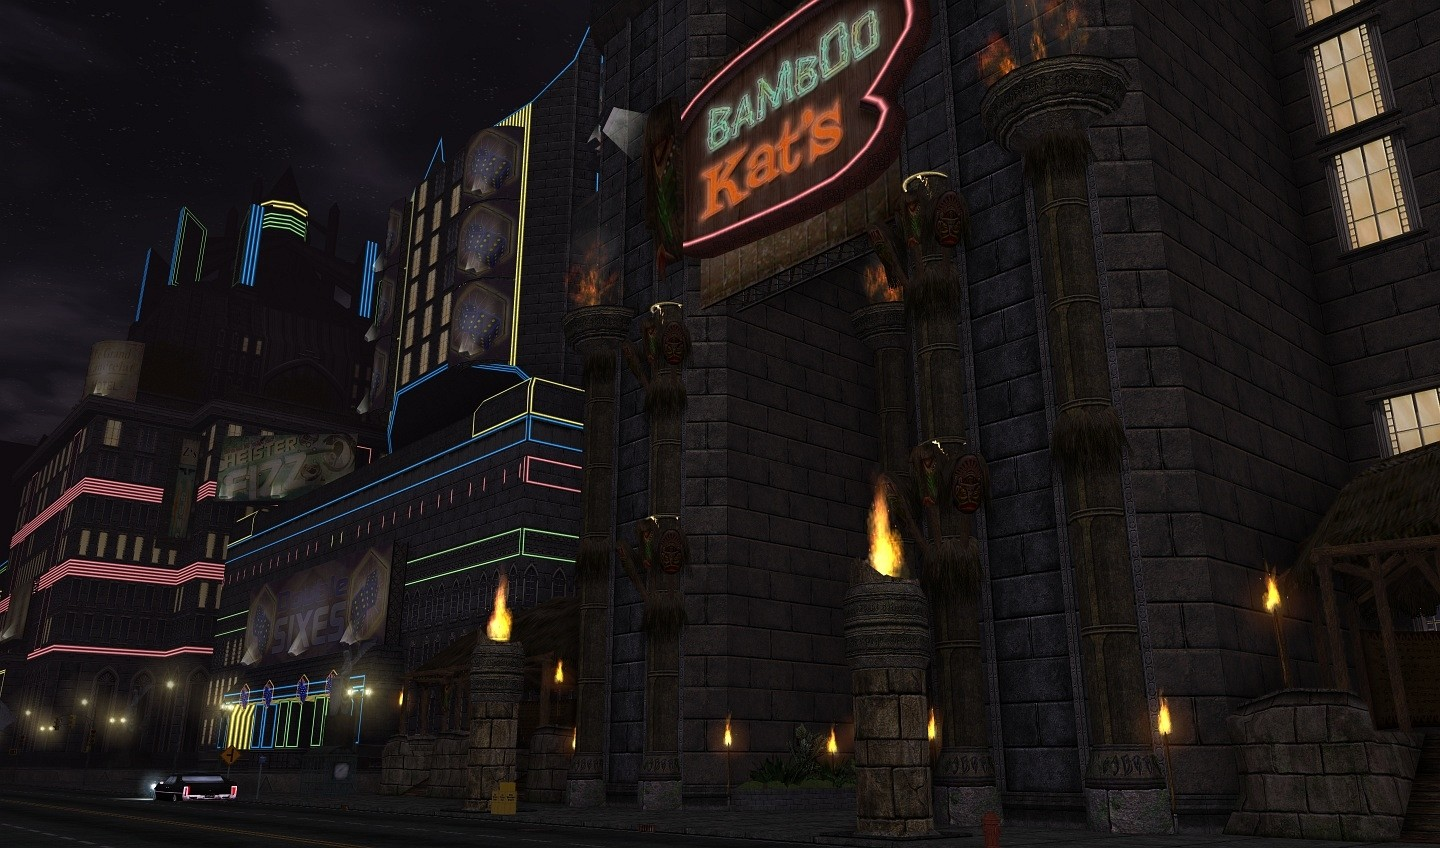 City of Heroes - Bamboo Kat's at Night (Aquabladez)